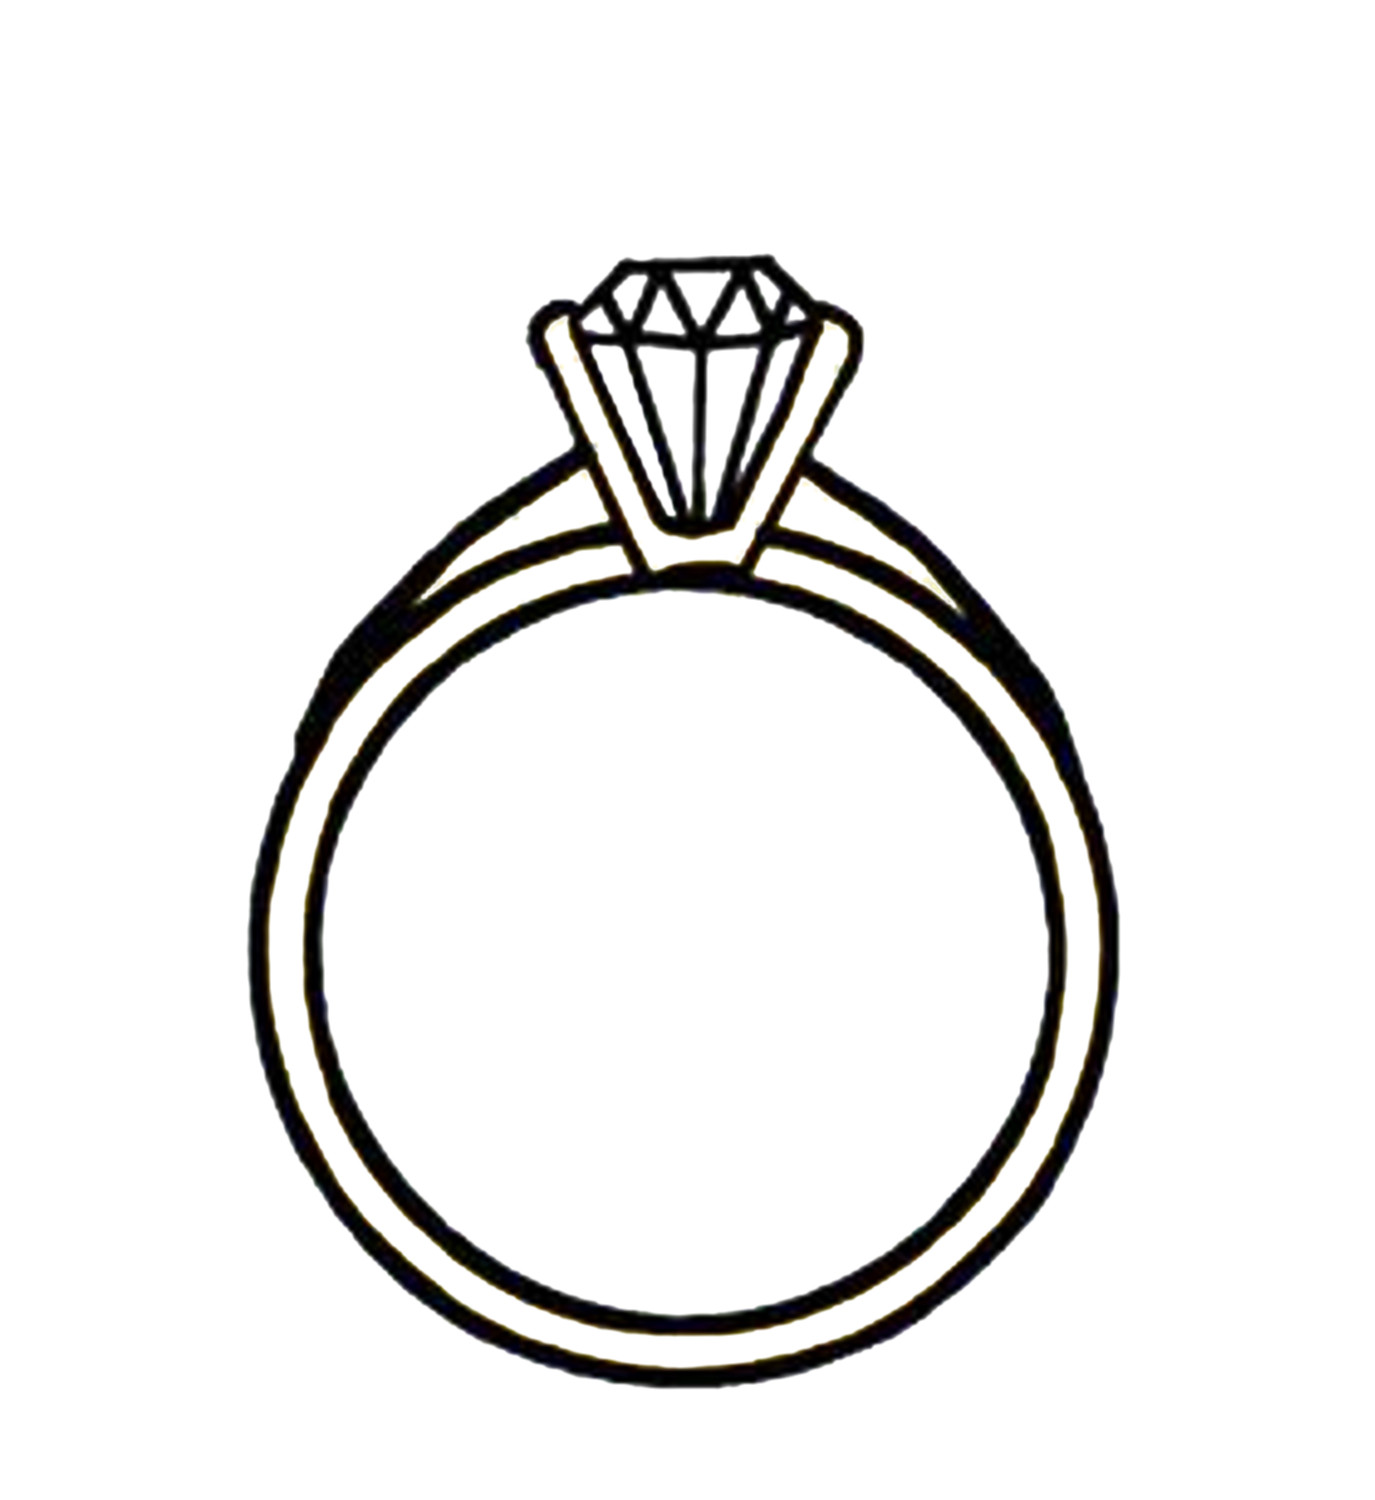 on download cartoon free wedding windsor rings star clip ring clipart art